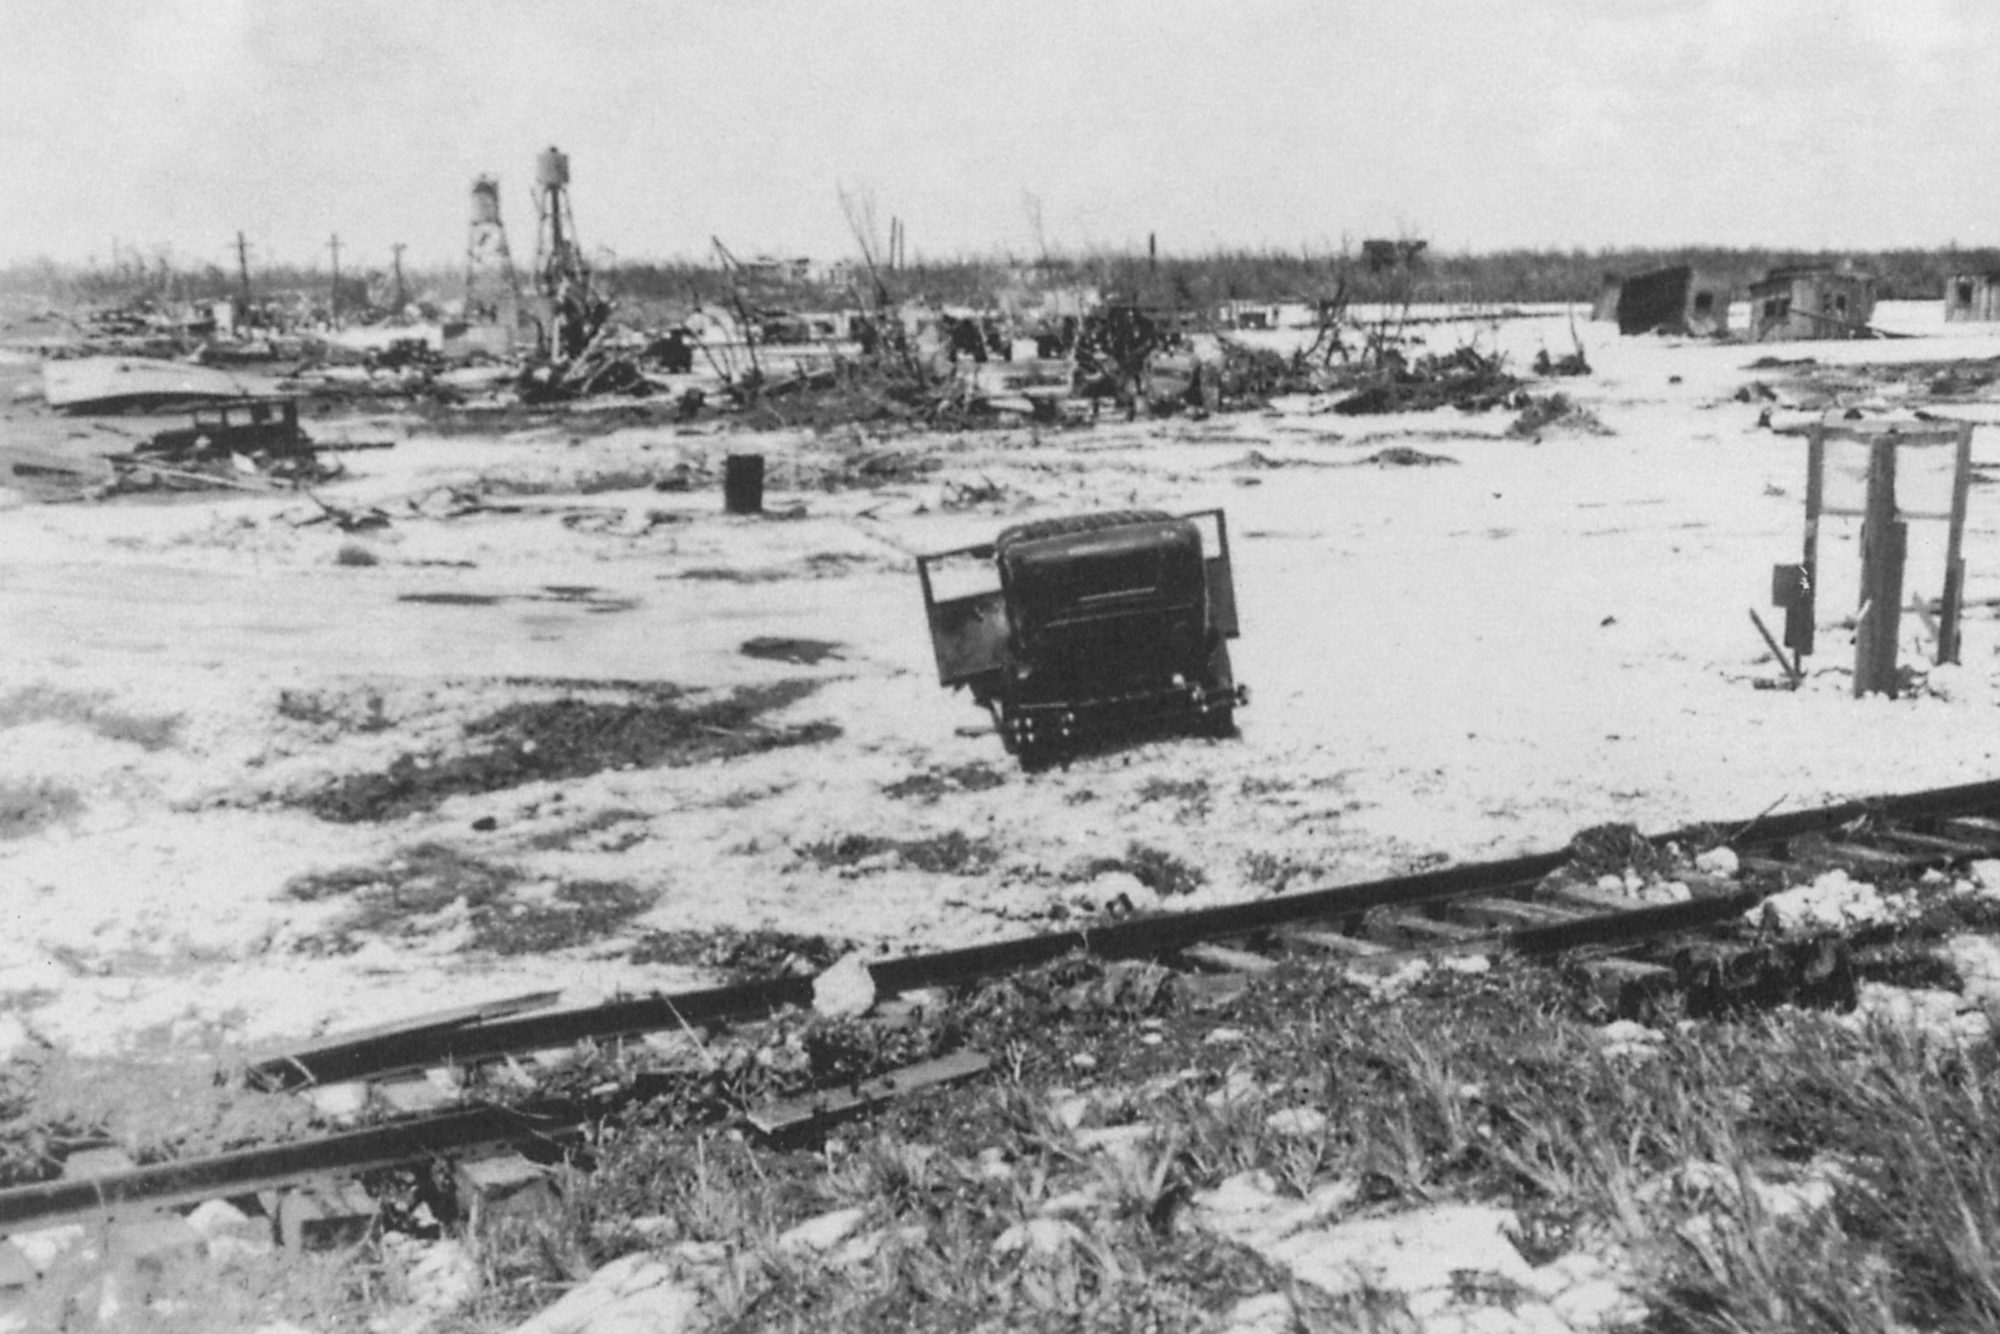 This holiday hurricane was a most unpleasant surprise: The storm, which tore through the Keys on September 2, 1935, with 185 mph winds and a storm surge of more than 20 feet, had been only a Category 1 hurricane the day before when it spun across the Bahamas. By the time it got to the U.S., the hurricane had changed its initially mellow tune for something far more sinister.